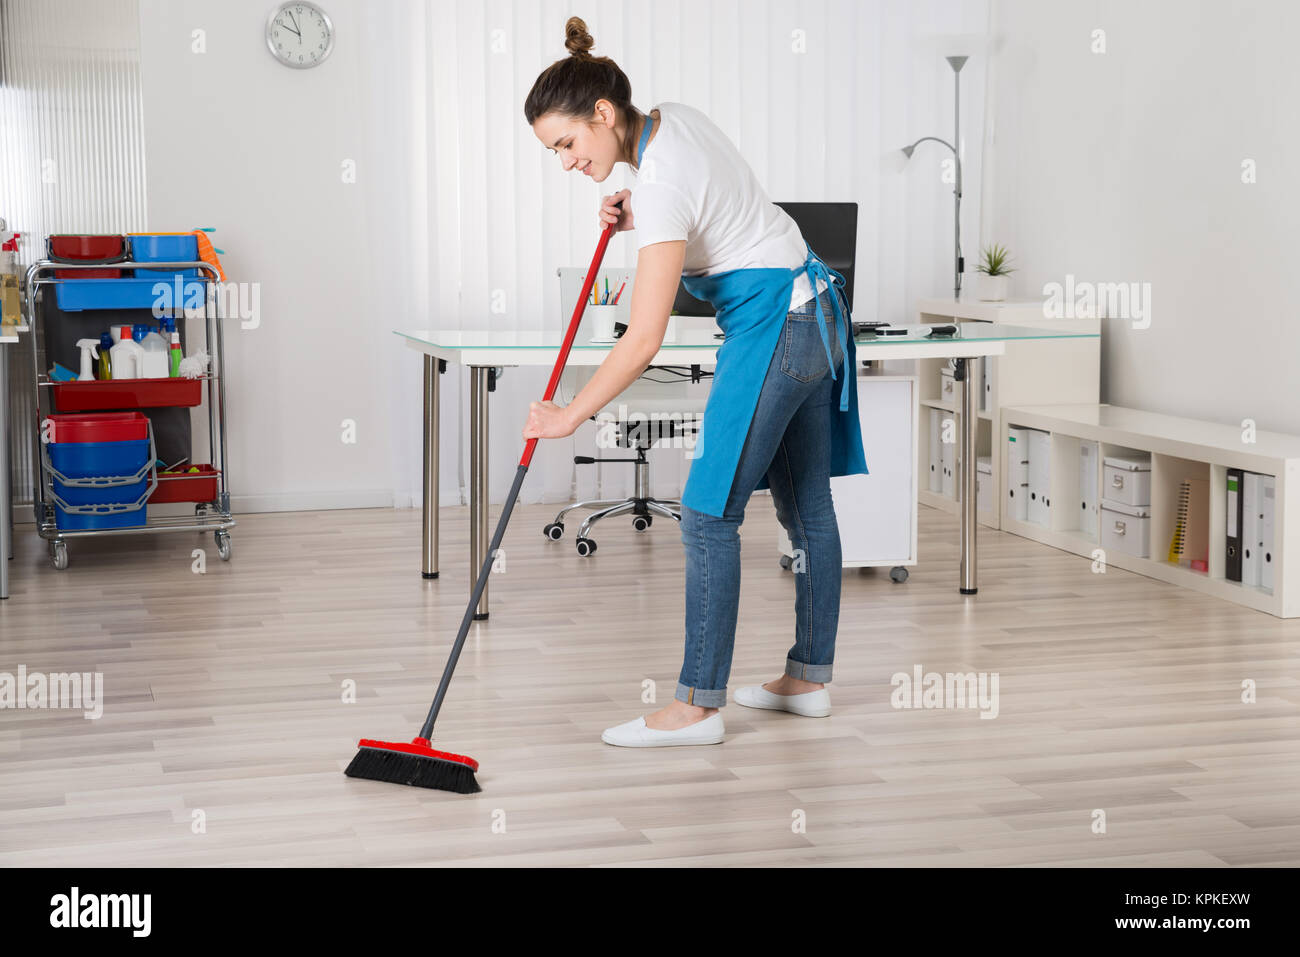 Female Janitor Sweeping Floor With Broom - Stock Image